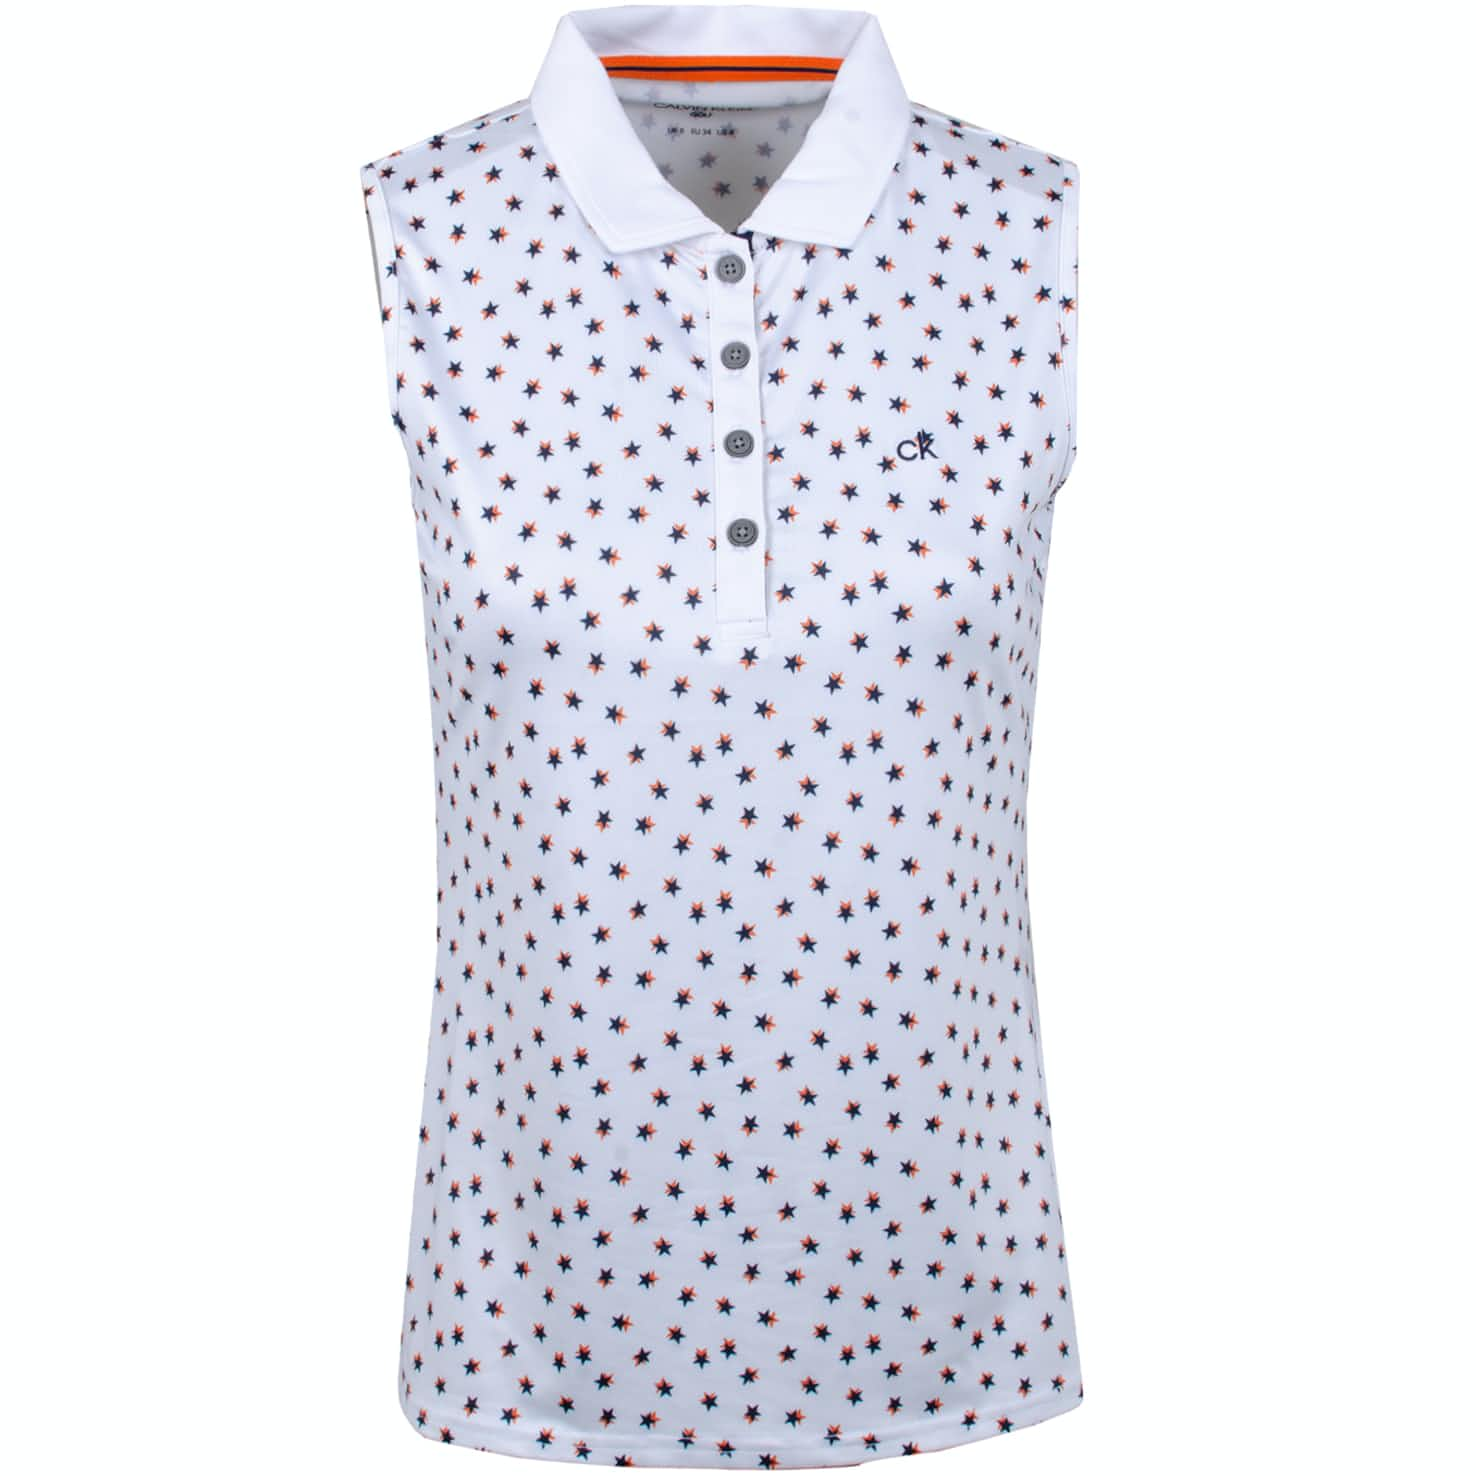 Womens Americana SL Polo White/Bright Navy - SS19